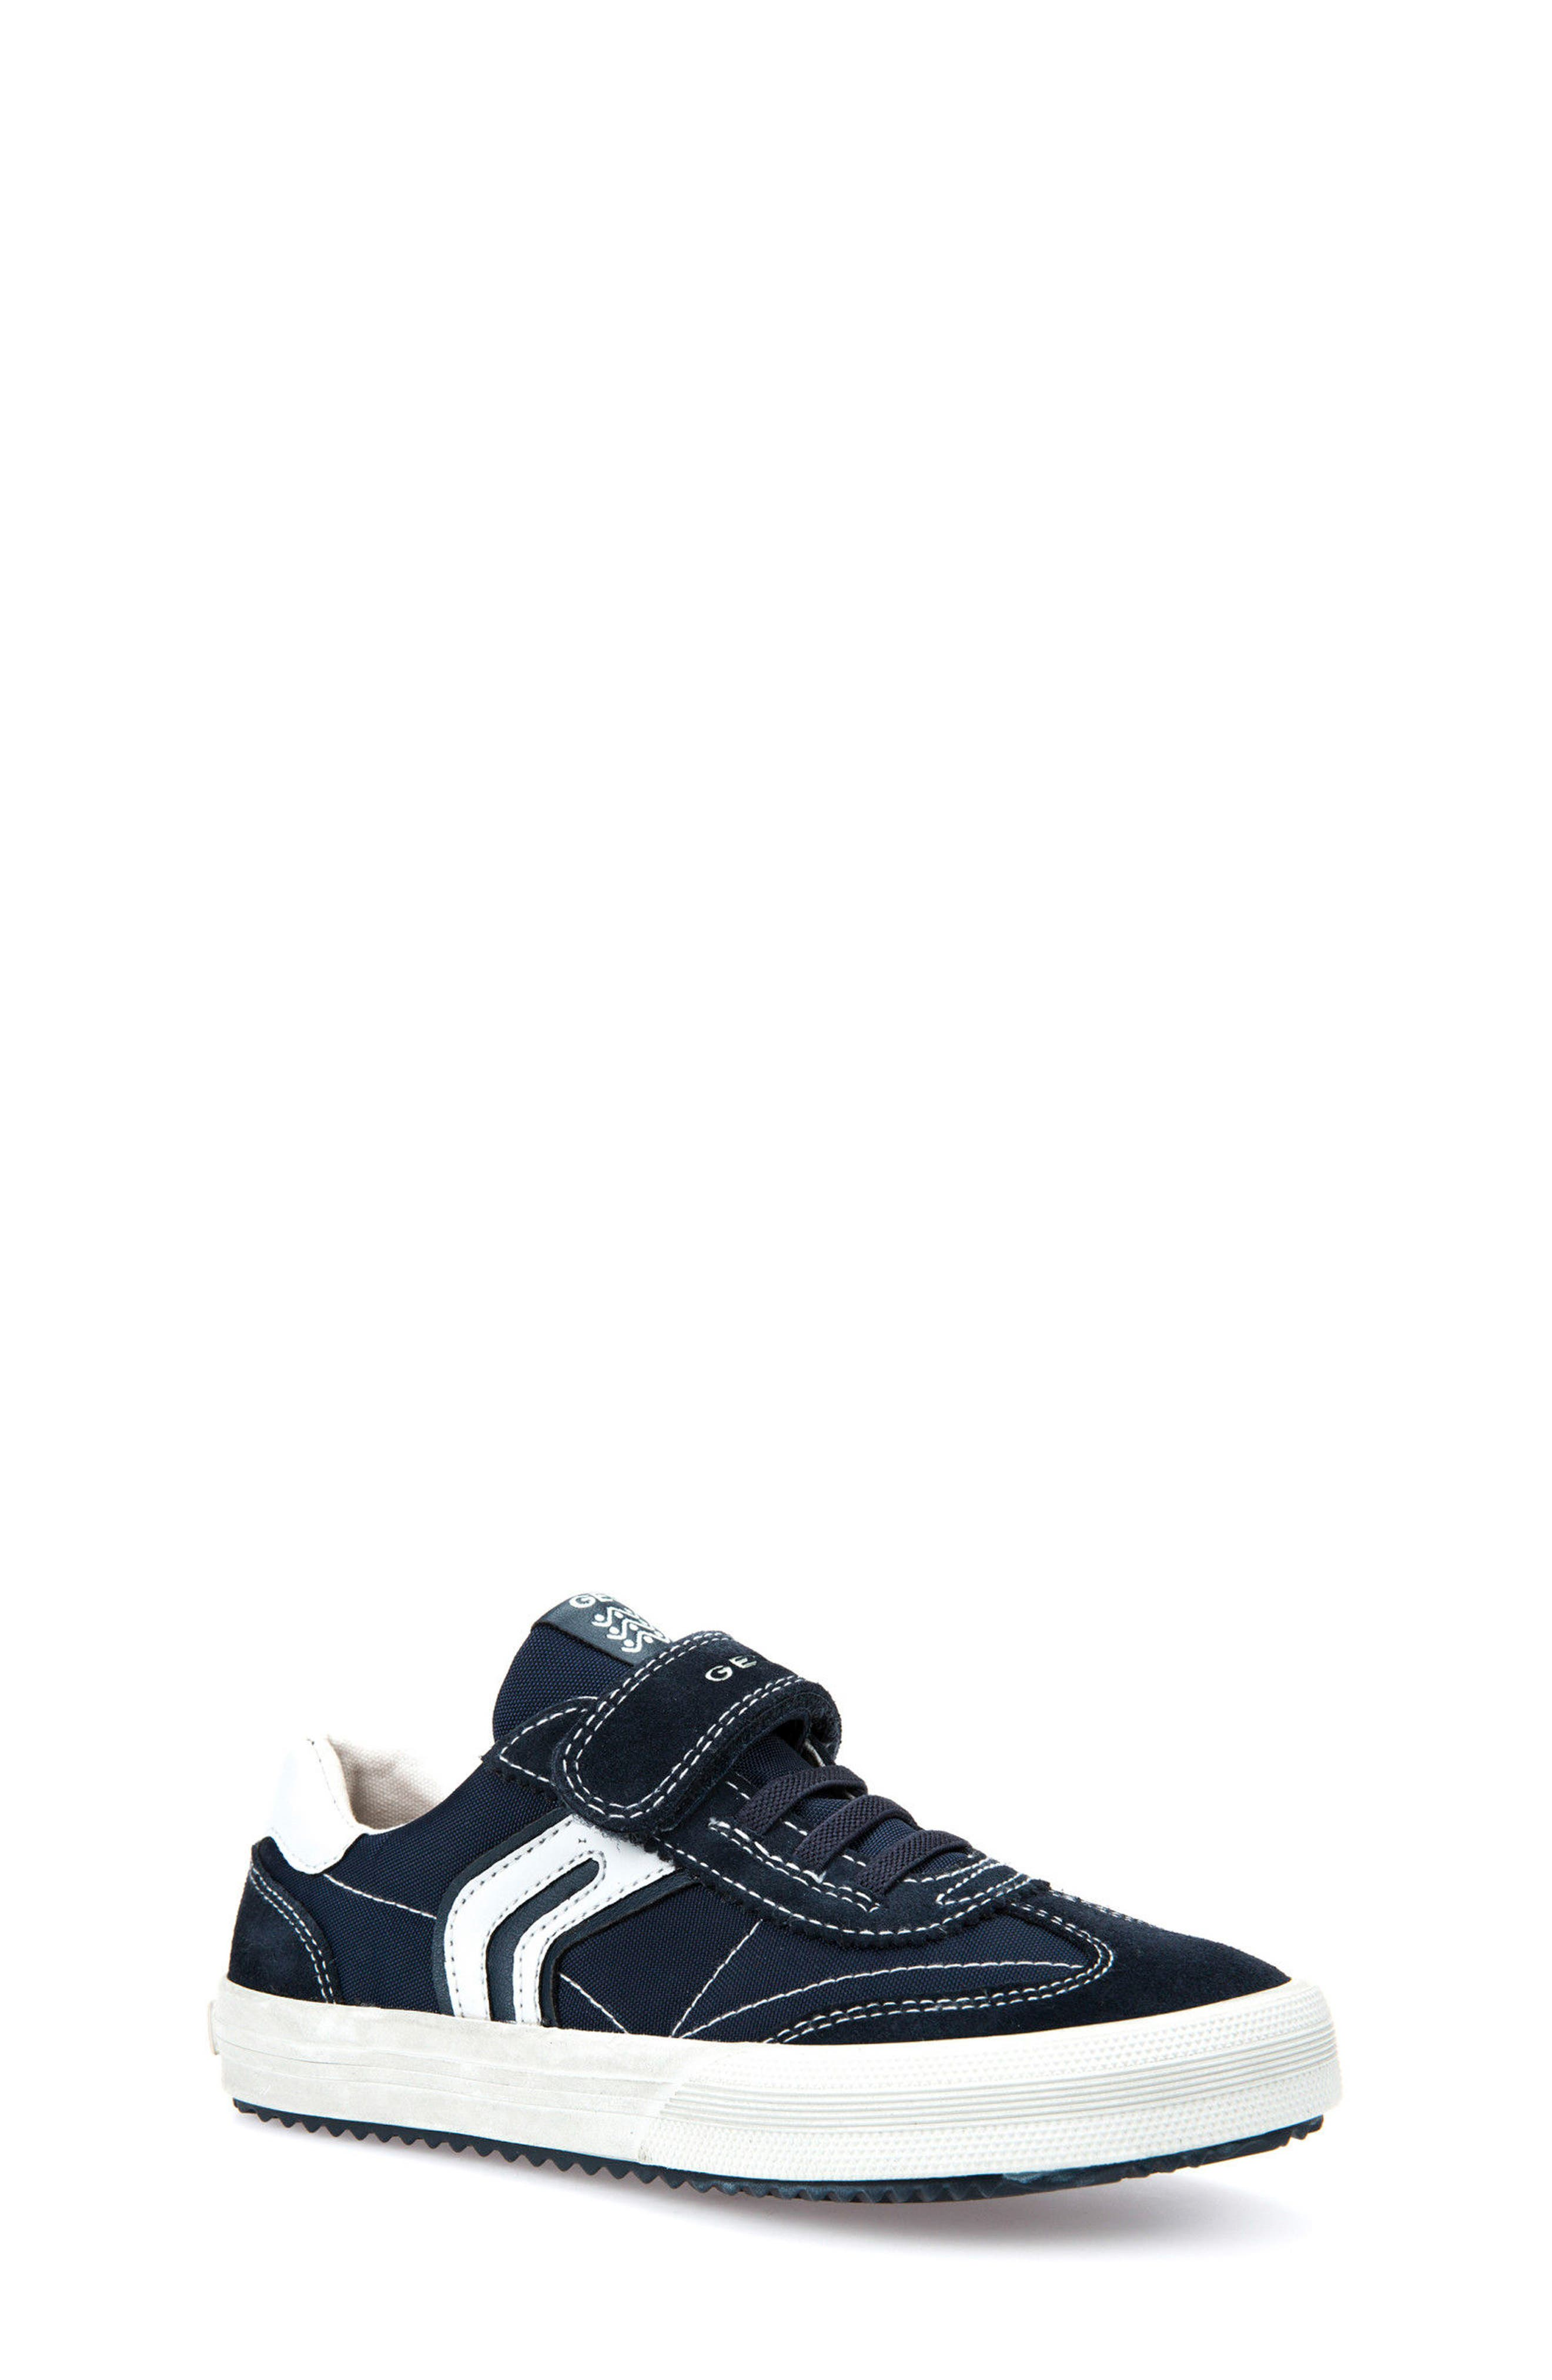 Alternate Image 1 Selected - Geox Alonisso Low Top Sneaker (Toddler, Little Kid & Big Kid)